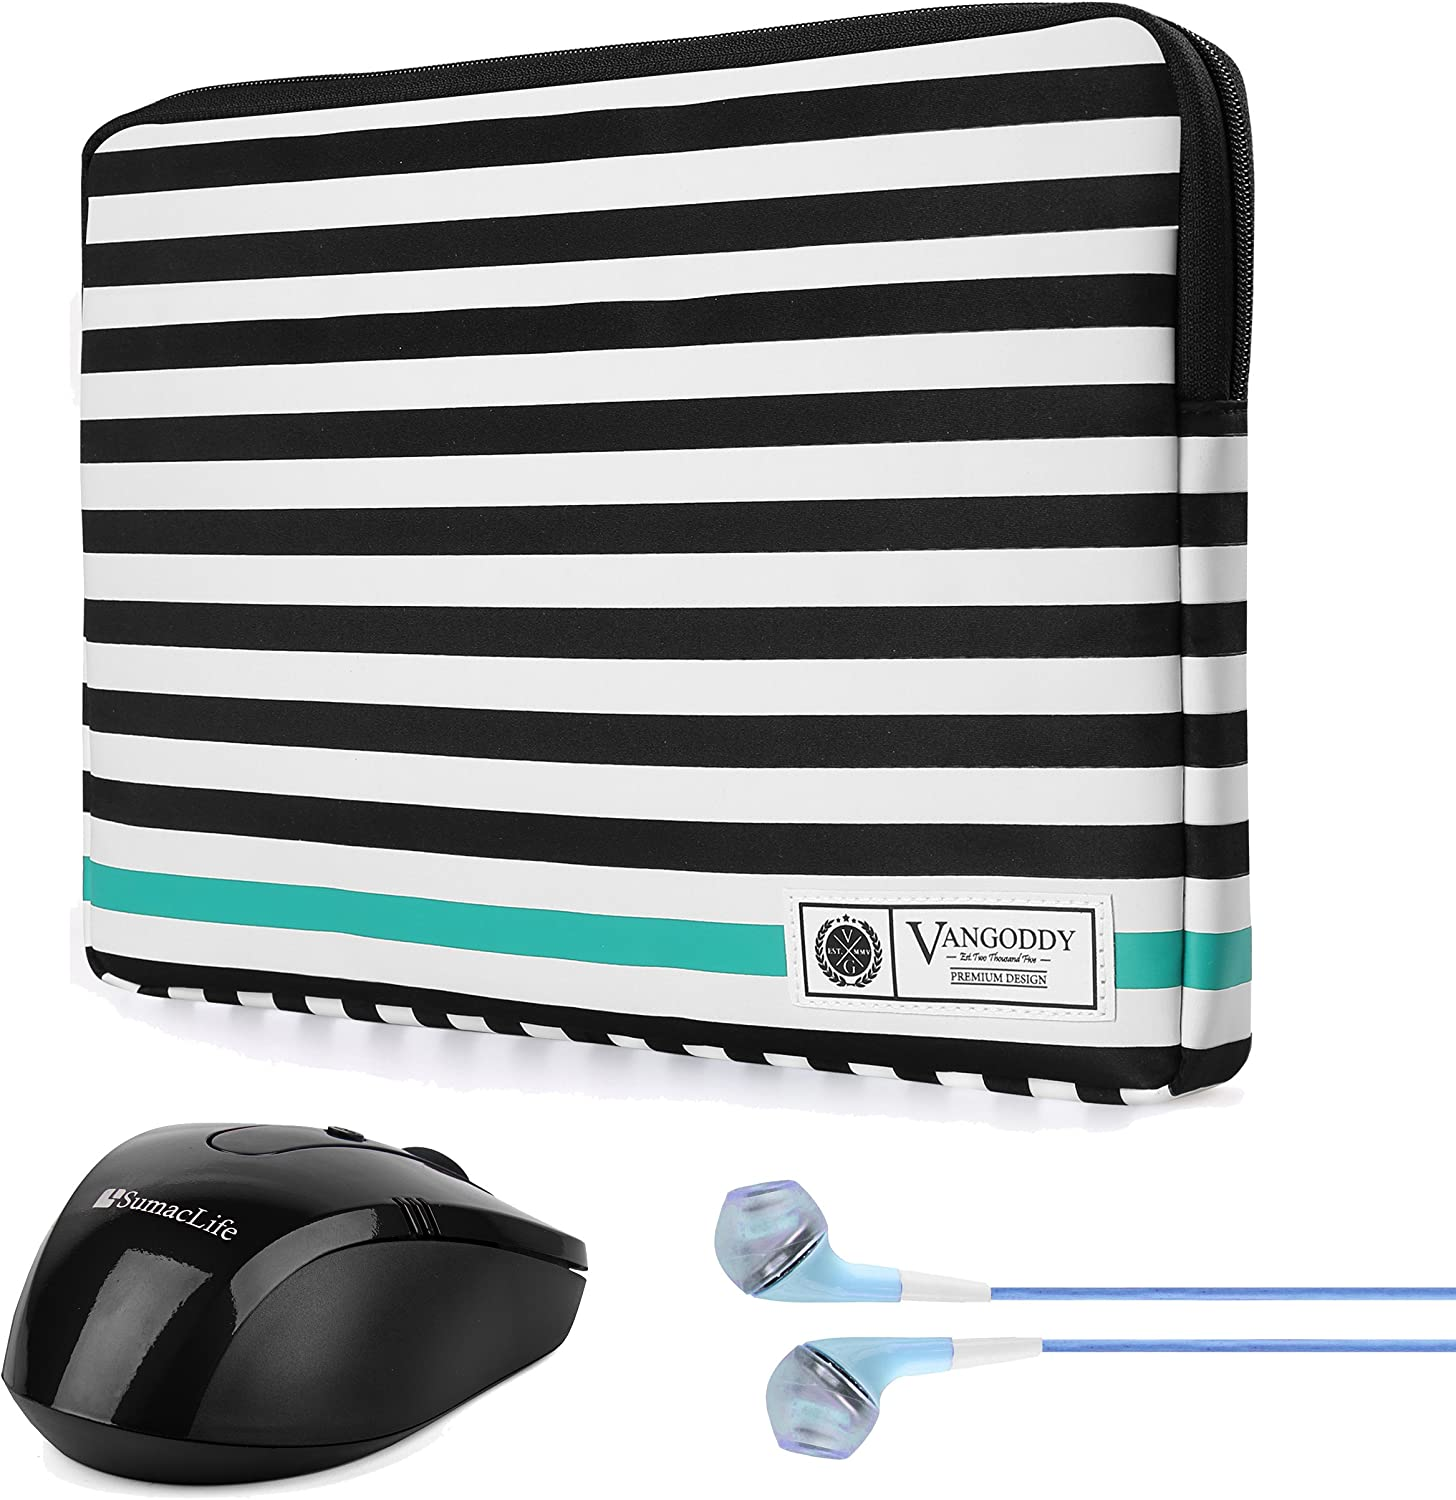 Vangoddy Luxe B Series Black White Stripe Slim Padded Compact Carrying Sleeve for Fujitsu Lifebook Series 13.3 inch 14 inch Tablet Laptop with Wireless Mouse with Headphone